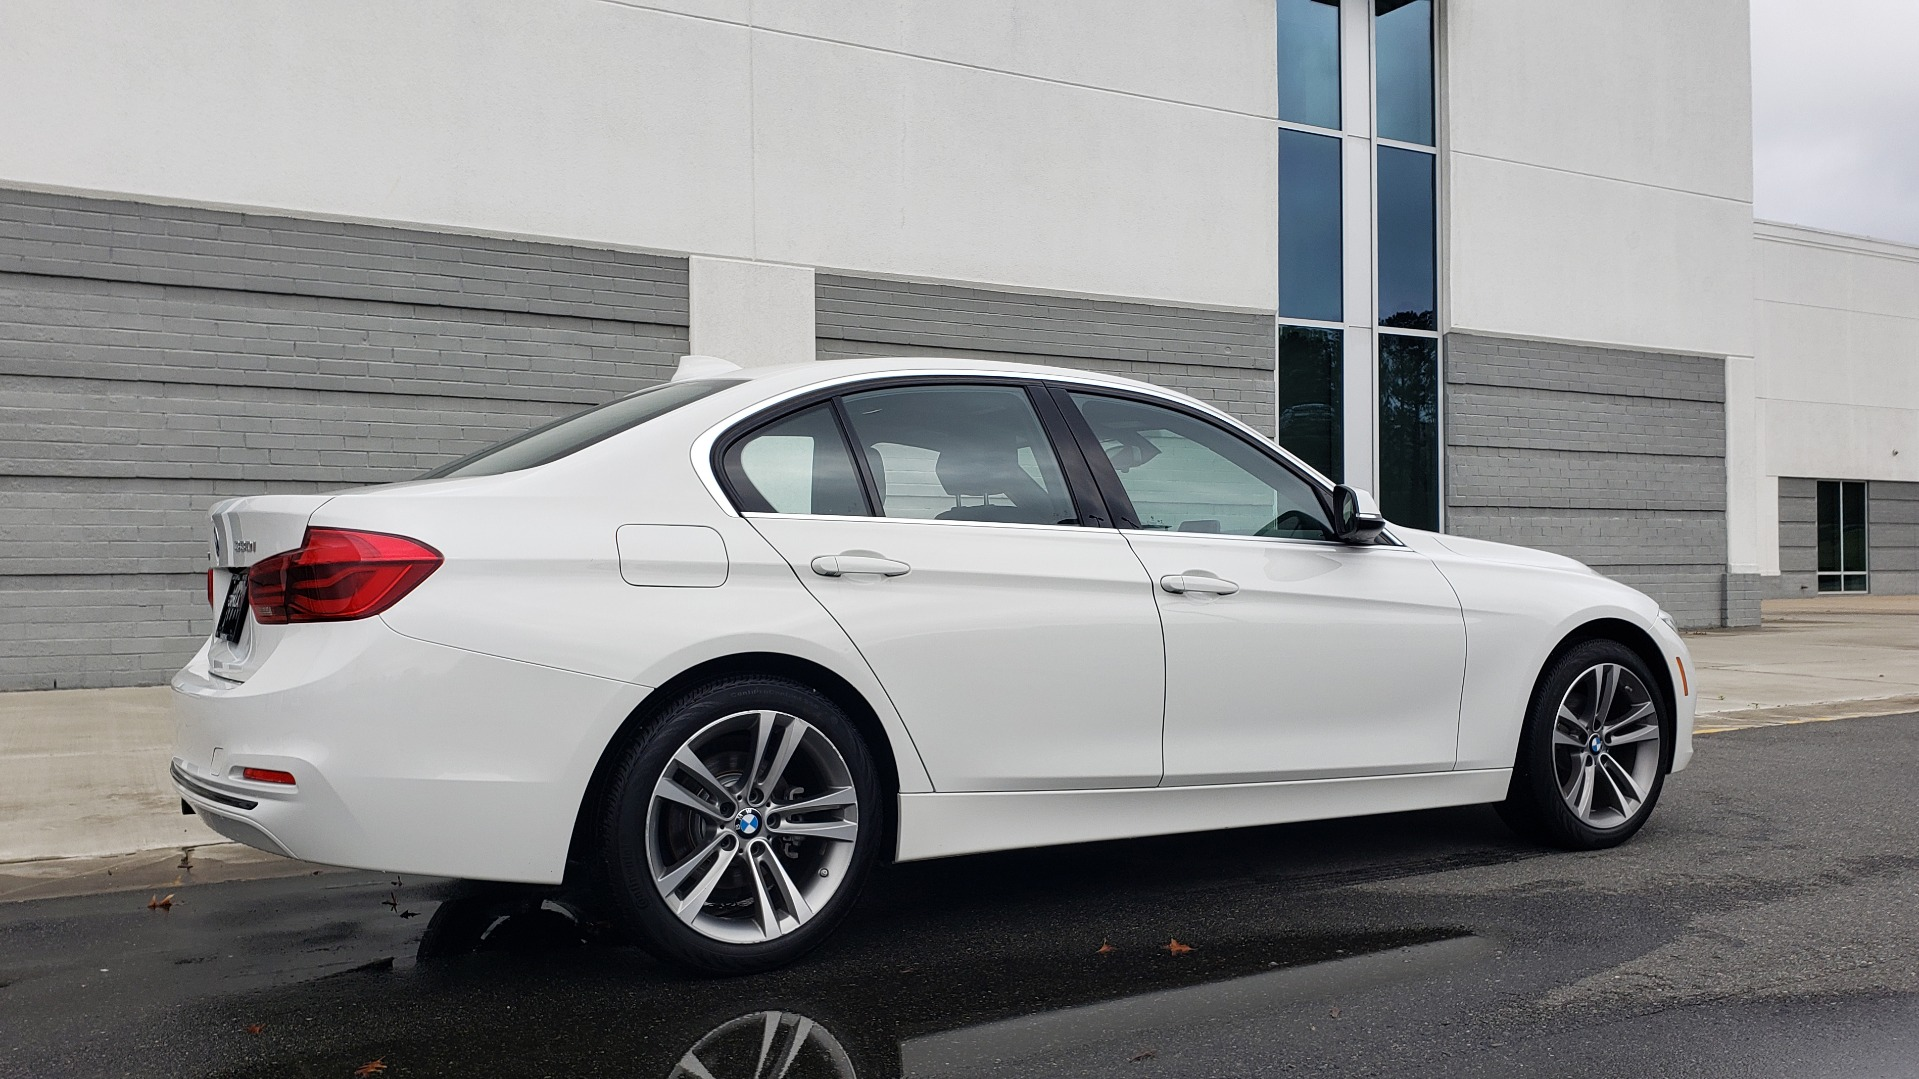 Used 2018 BMW 3 SERIES 330I XDRIVE / CONV PKG / SUNROOF / HTD STS / REARVIEW for sale $24,795 at Formula Imports in Charlotte NC 28227 4